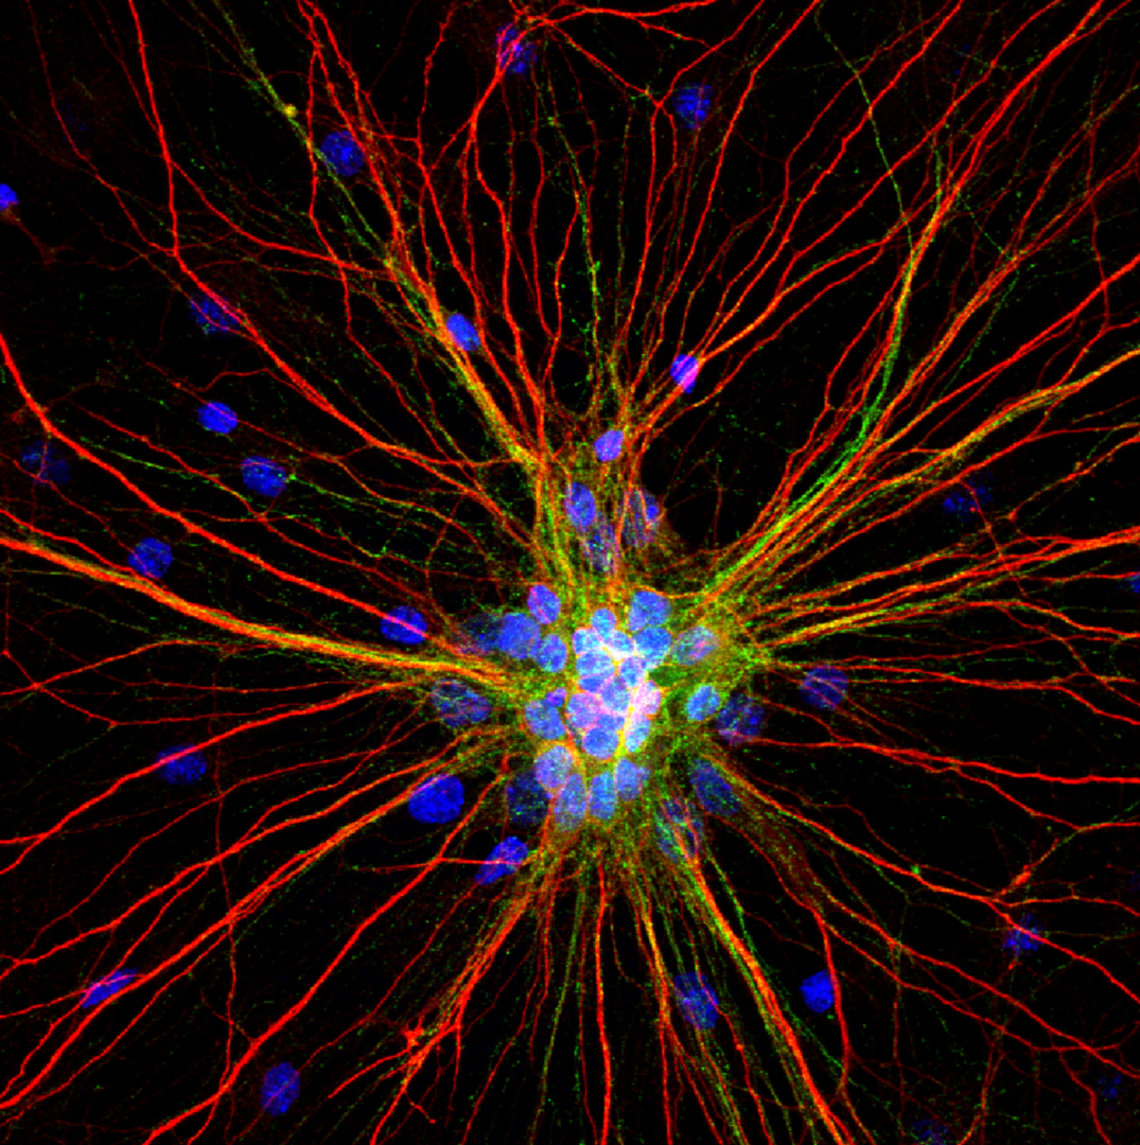 Rat cortical neurons labeled for dendrites (red), axons (green) and nuclei (blue).